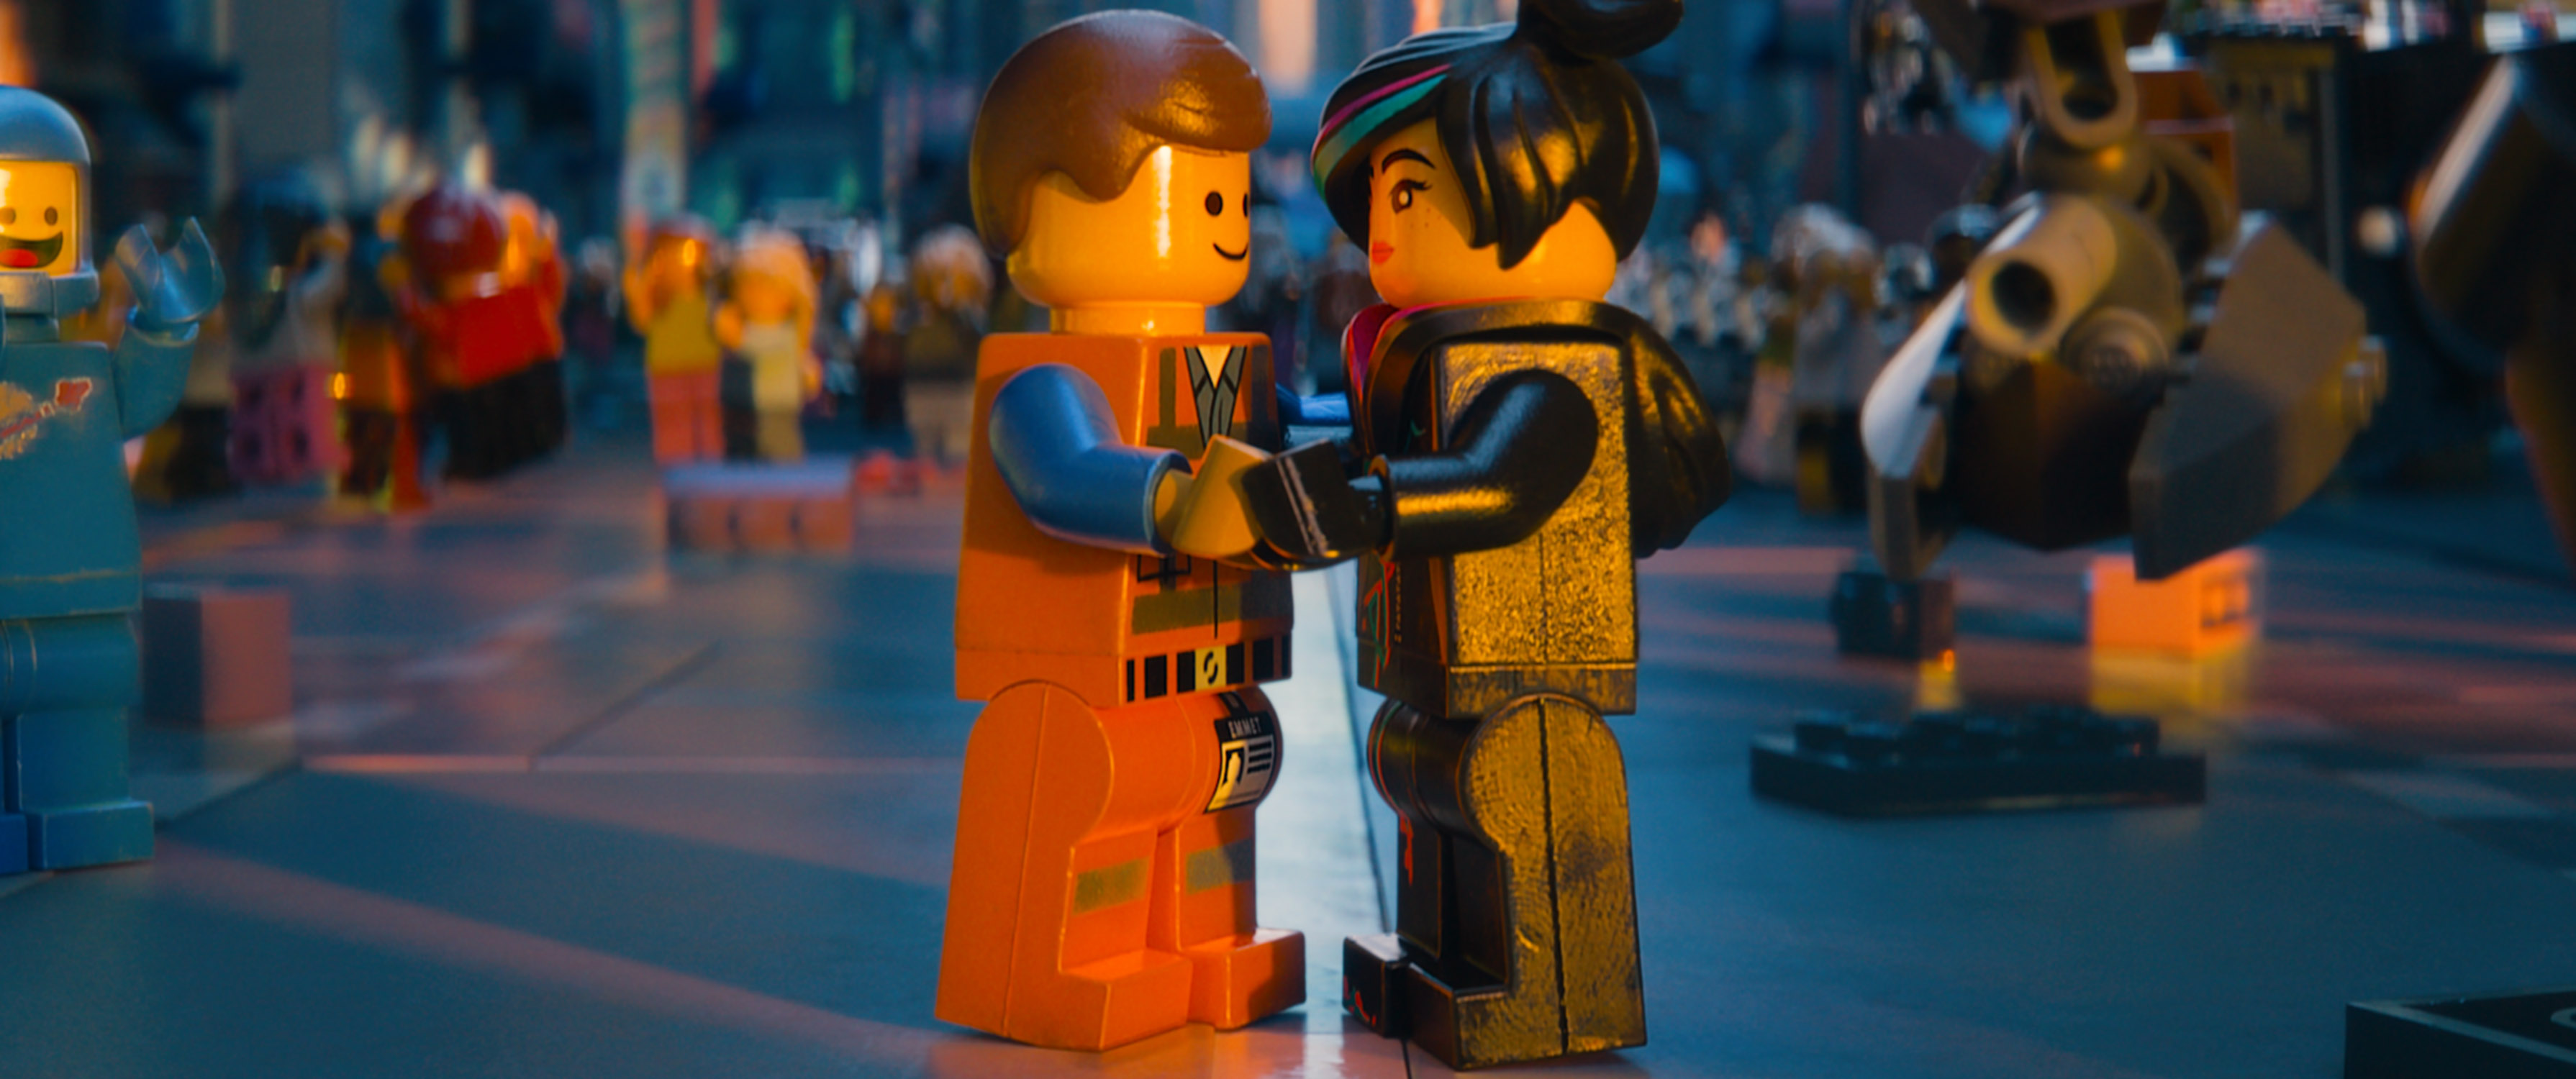 The Lego Movie 2 Story Revealed Lord And Miller Rewriting Collider